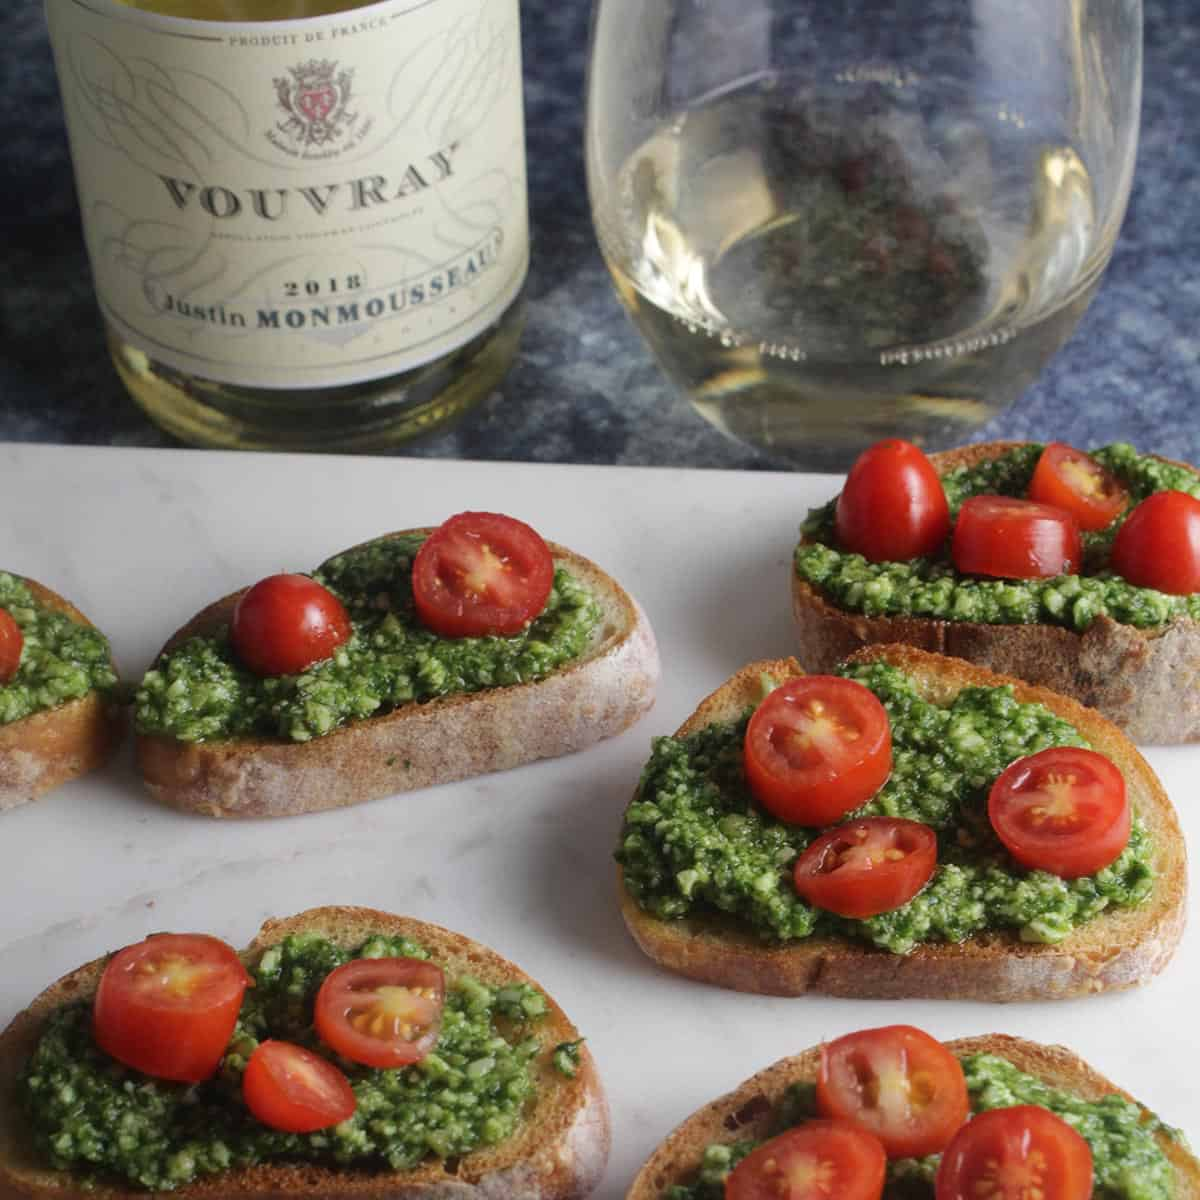 crostini with wine pairing